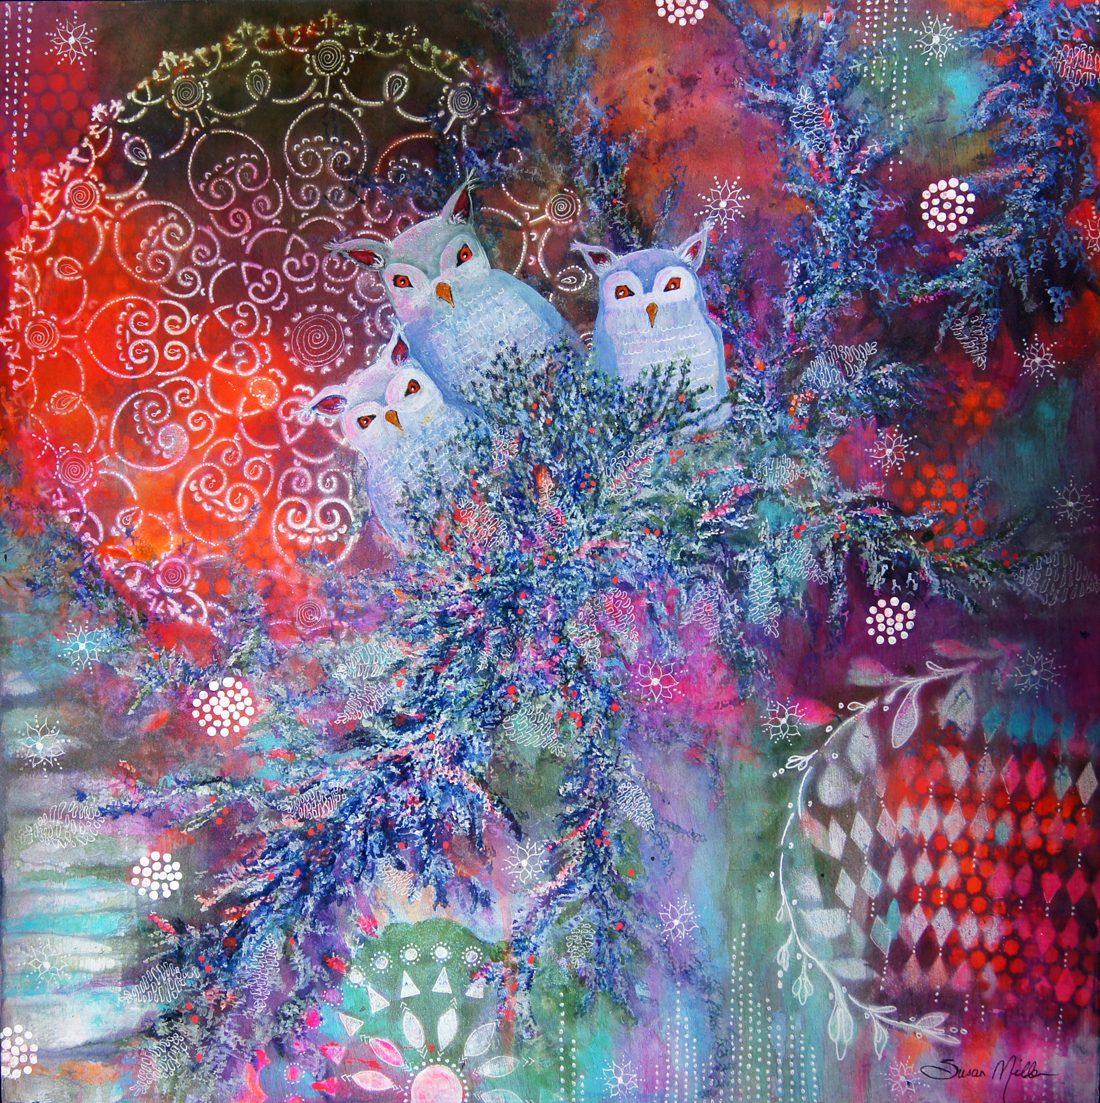 Susan Miller - Image: Seeing in the DarkSusan is a mixed media artist, expressive arts therapist, creativity coach, and artist muse who is passionate about combining art and healing. She uses an intuitive painting layering process which uses the power of color, nature and symbolic images to create paintings full of whimsy, magic, and joy.